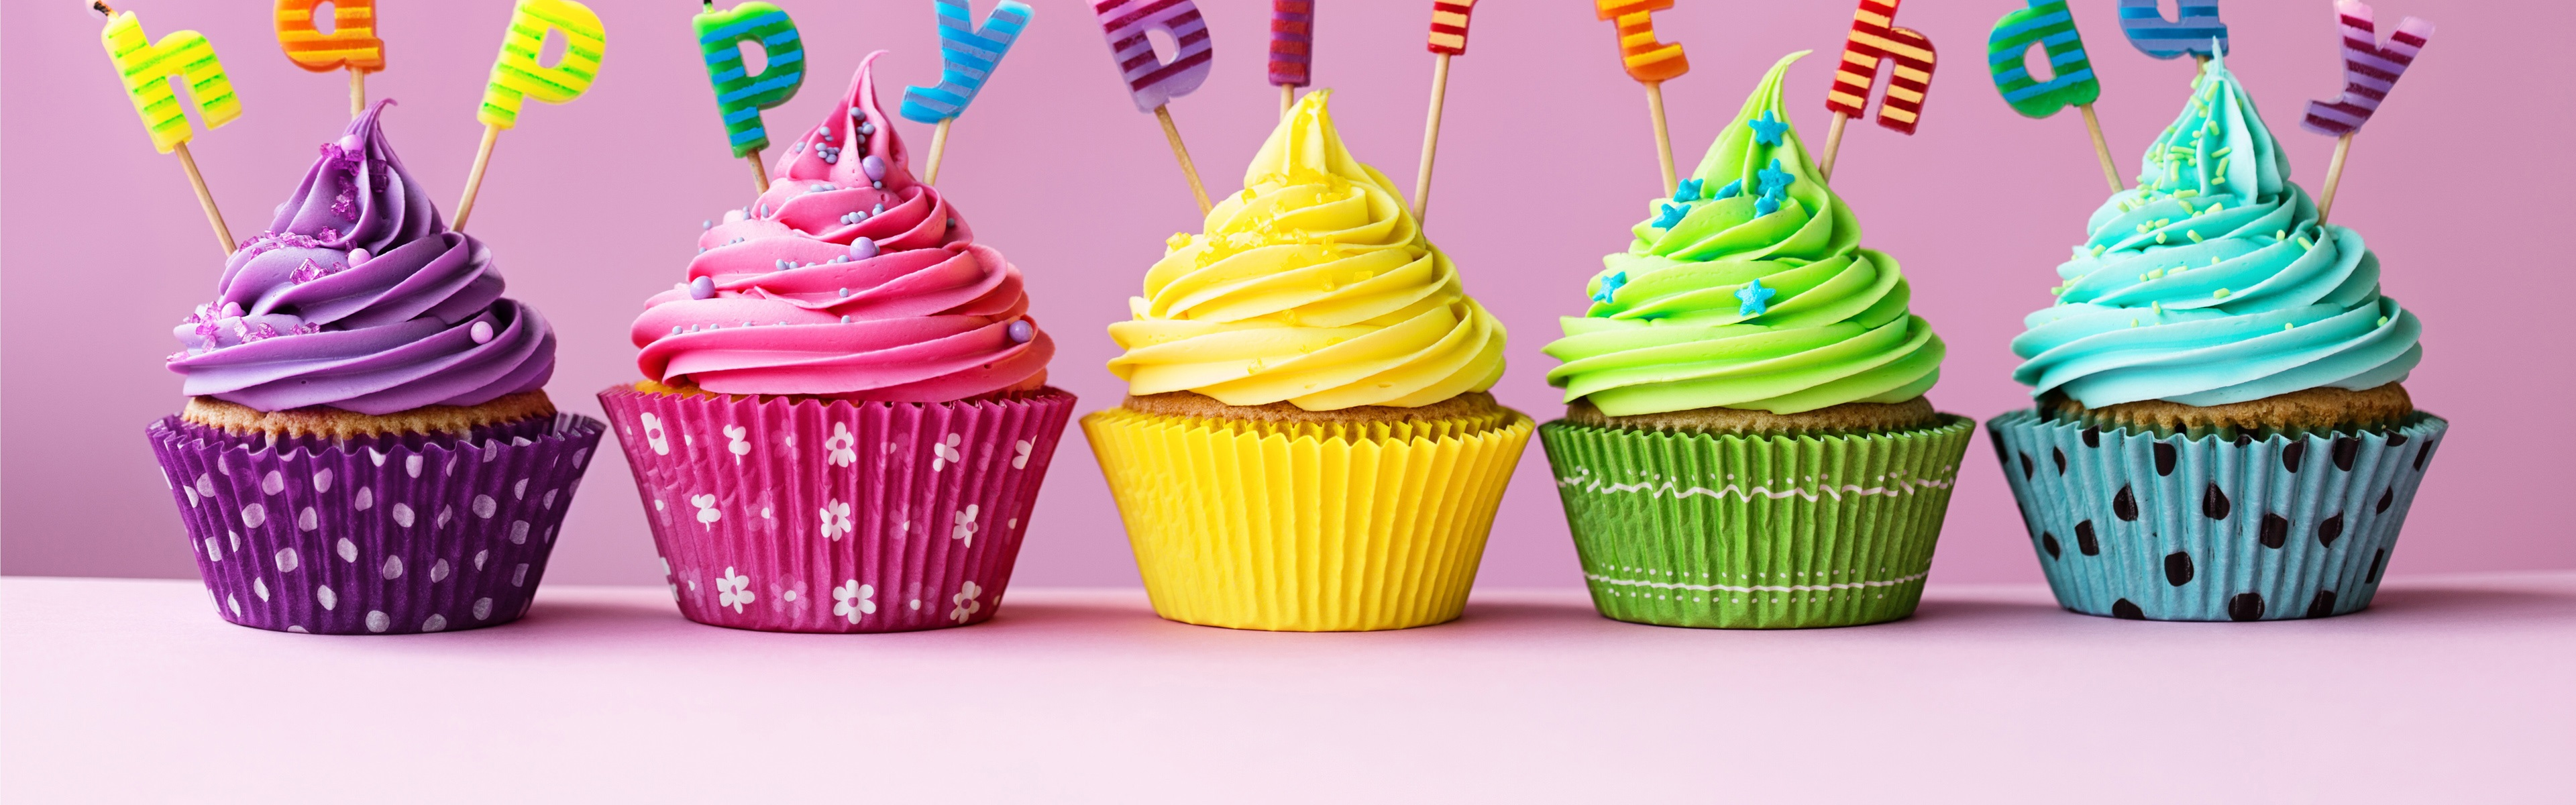 Wallpaper Happy Birthday Cakes Colorful Cupcakes Candles